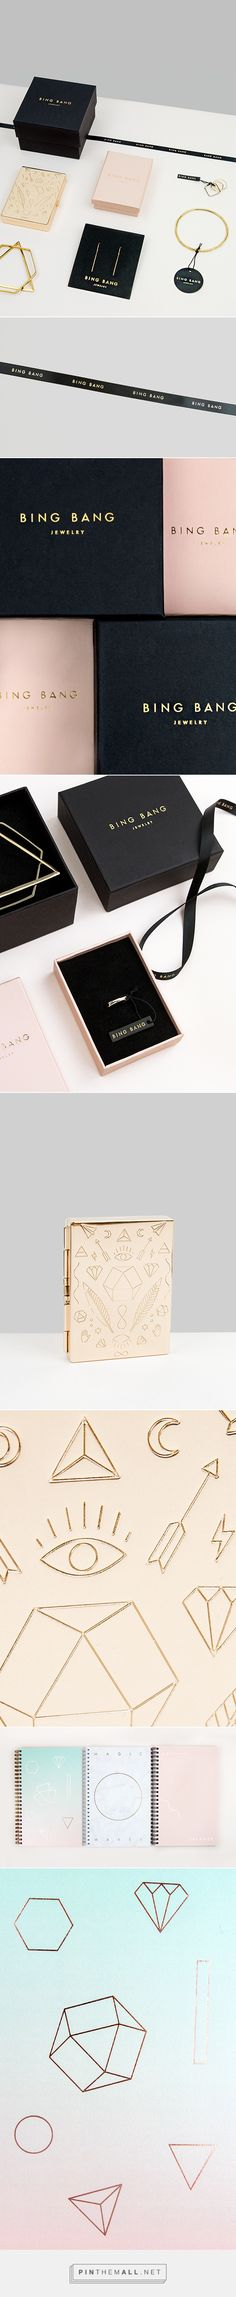 Bing Bang Jewelry Branding & Packaging on Behance by Verena Michelitsch Curated by Packaging Diva PD simple and beautiful created via https://www.behance.net/VerenaMichelitsch